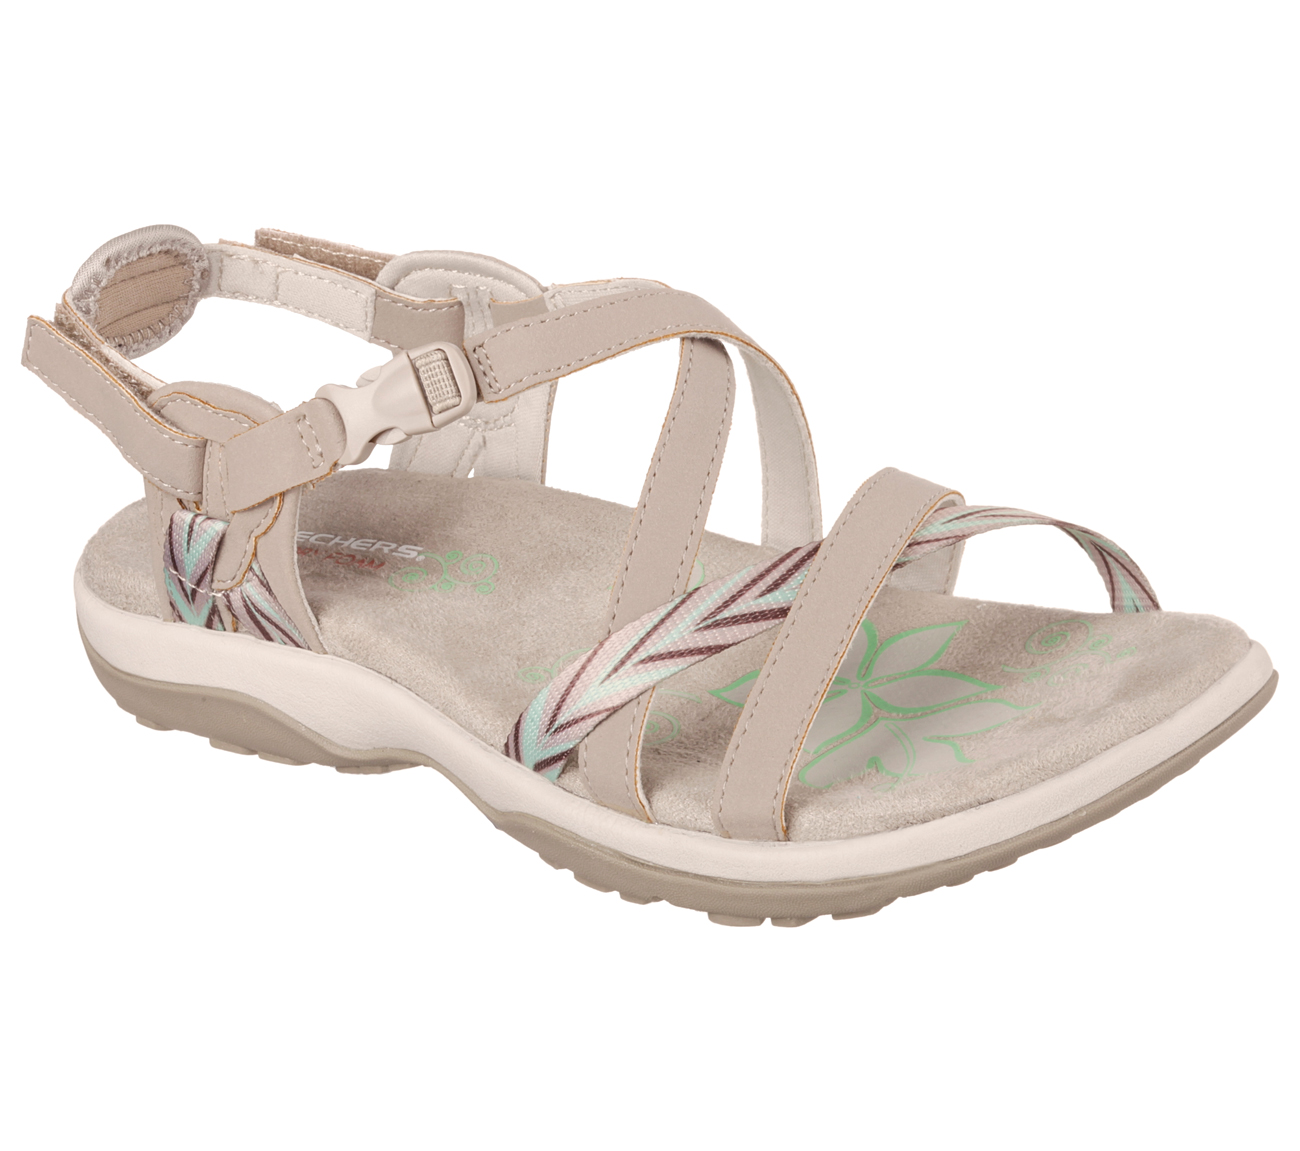 skechers women sandals sale   OFF36% Discounted 1d5be0de8